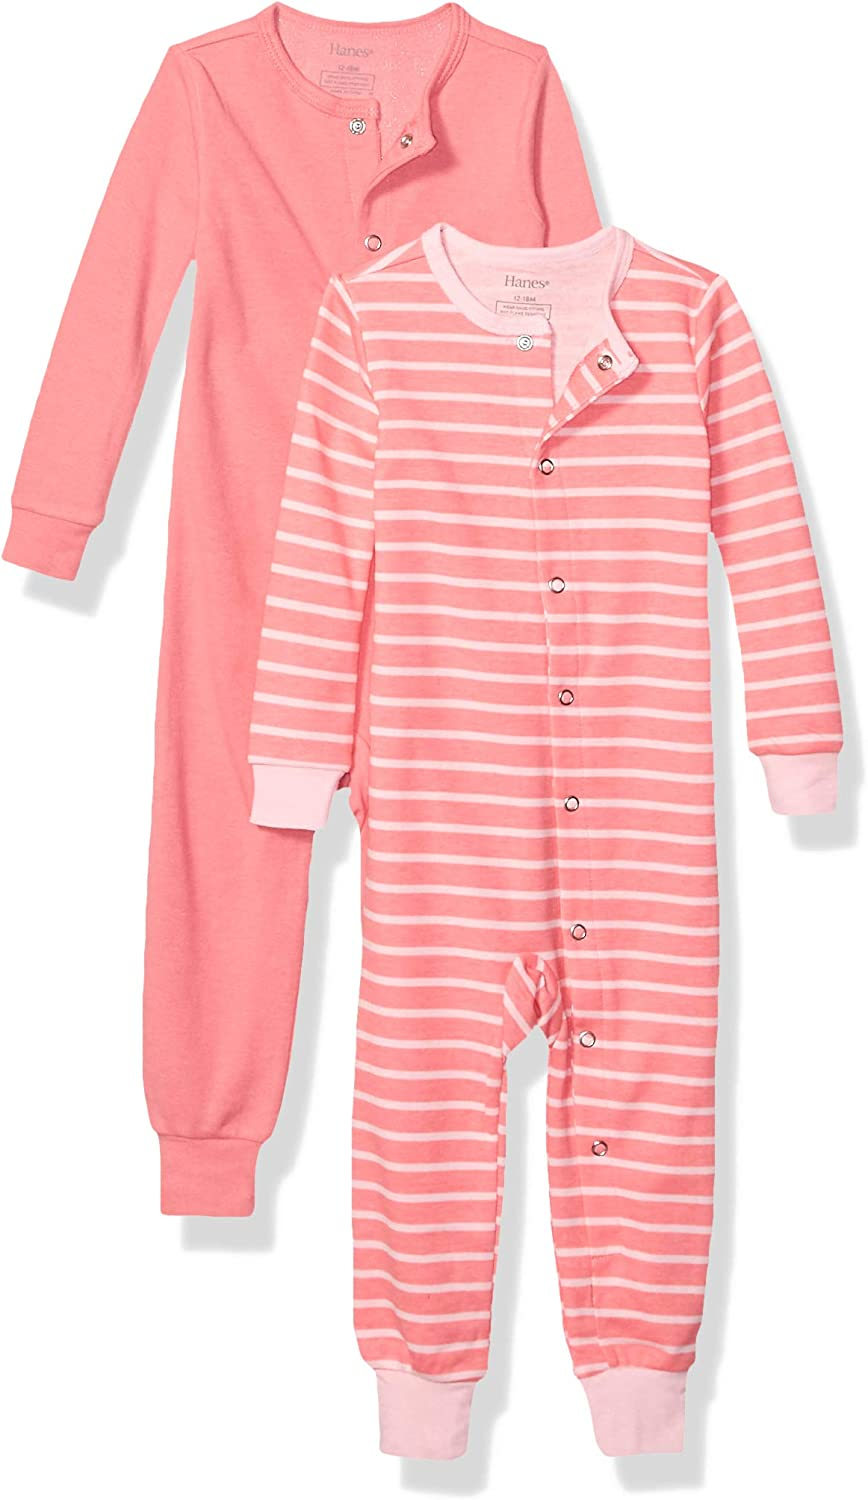 18-24 Months Hanes Ultimate Baby Zippin 2 Pack Sleep and Play Suits Grey//Pink Stripe